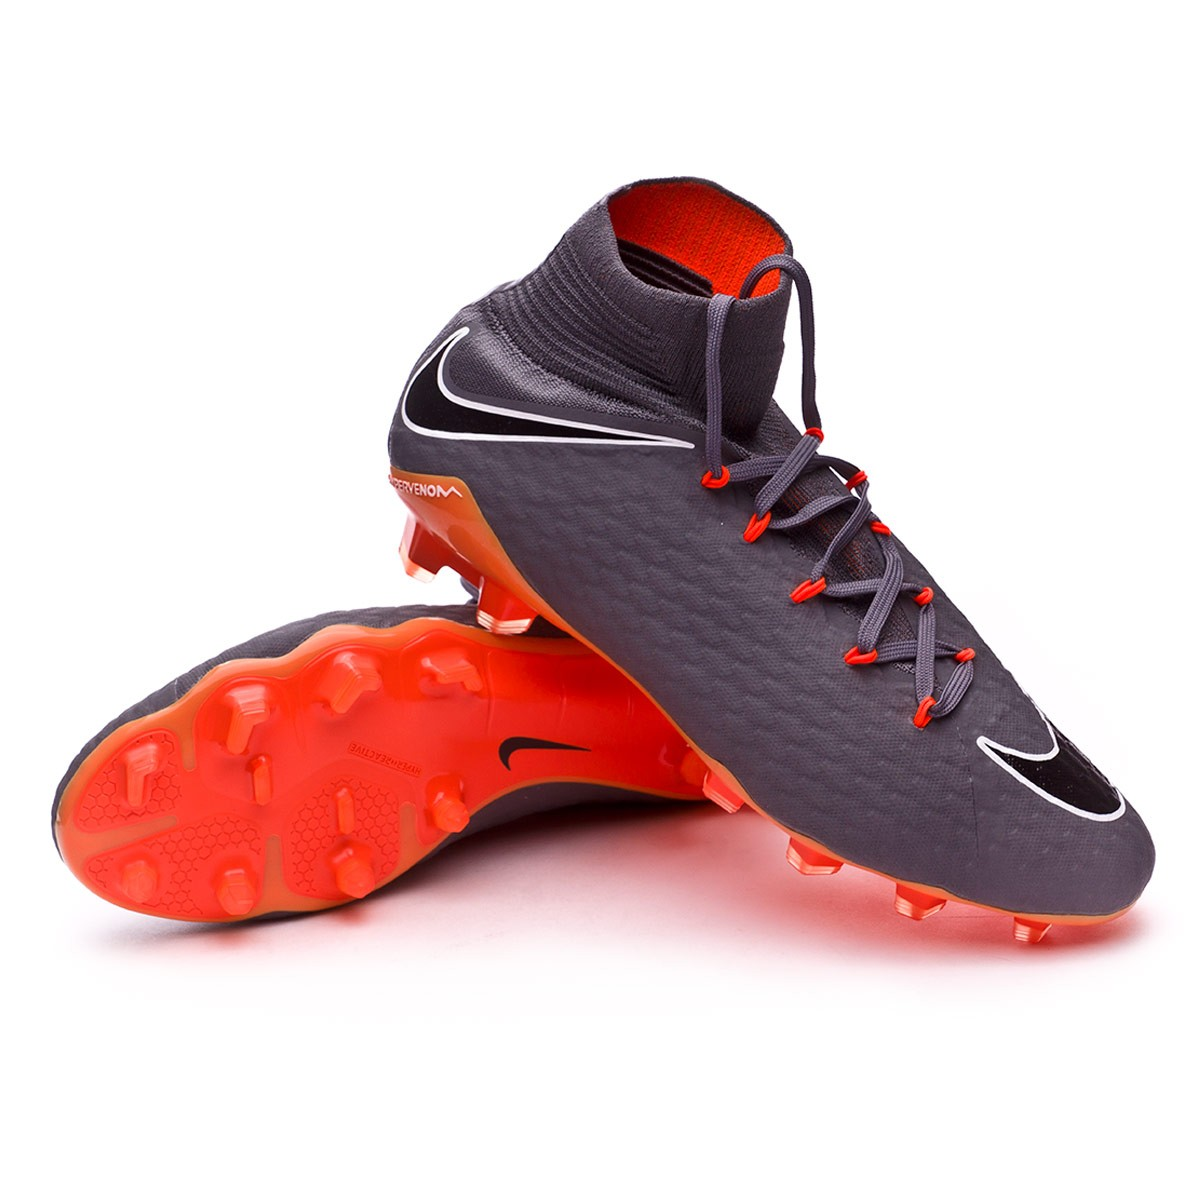 511031d1554c8 Football Boots Nike Hypervenom Phantom III Pro DF FG Dark grey-Total  orange-White - Tienda de fútbol Fútbol Emotion